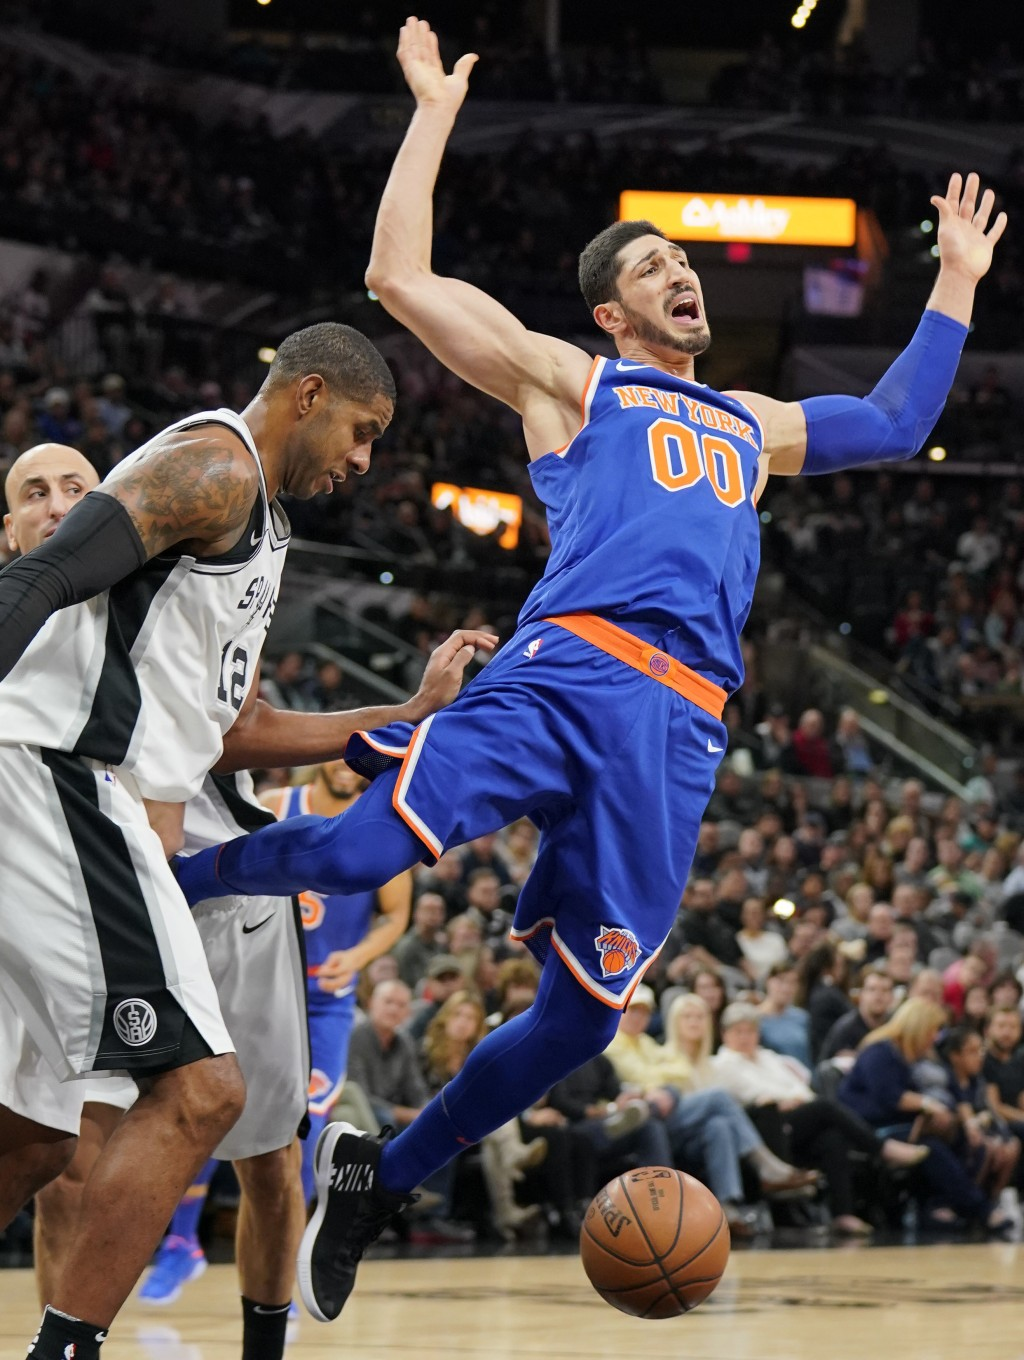 New York Knicks' Enes Kanter (00) falls after losing the ball to San Antonio Spurs' LaMarcus Aldridge during the first half of an NBA basketball game ...